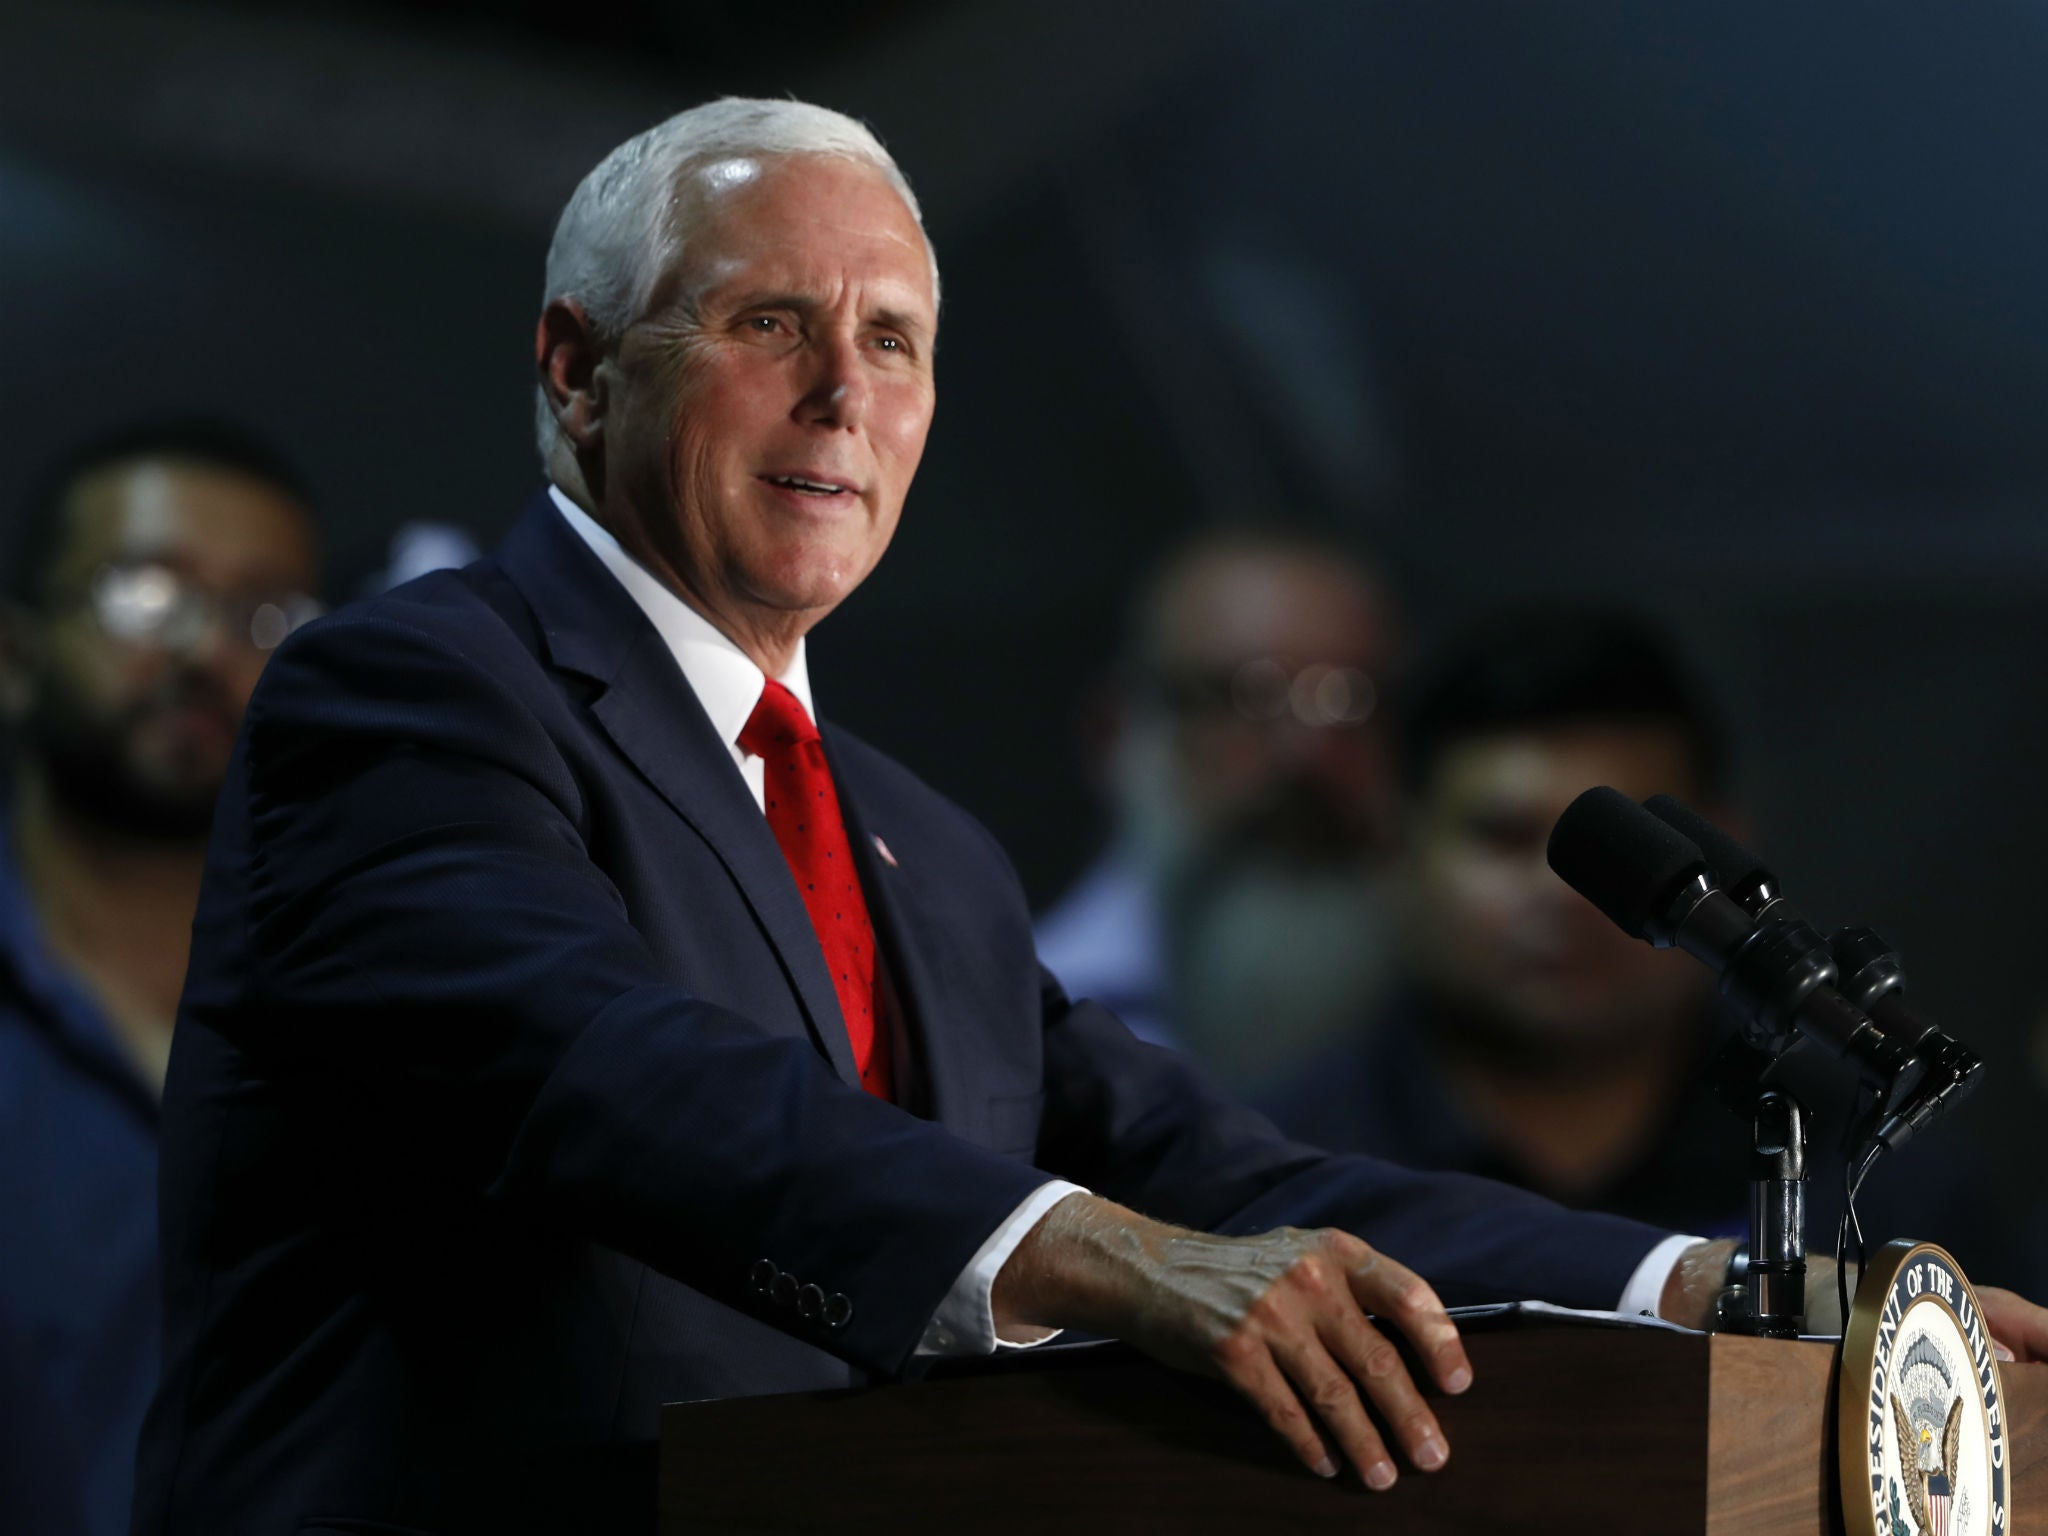 Mike Pence compares Trump's border wall stance to Martin Luther King's legacy